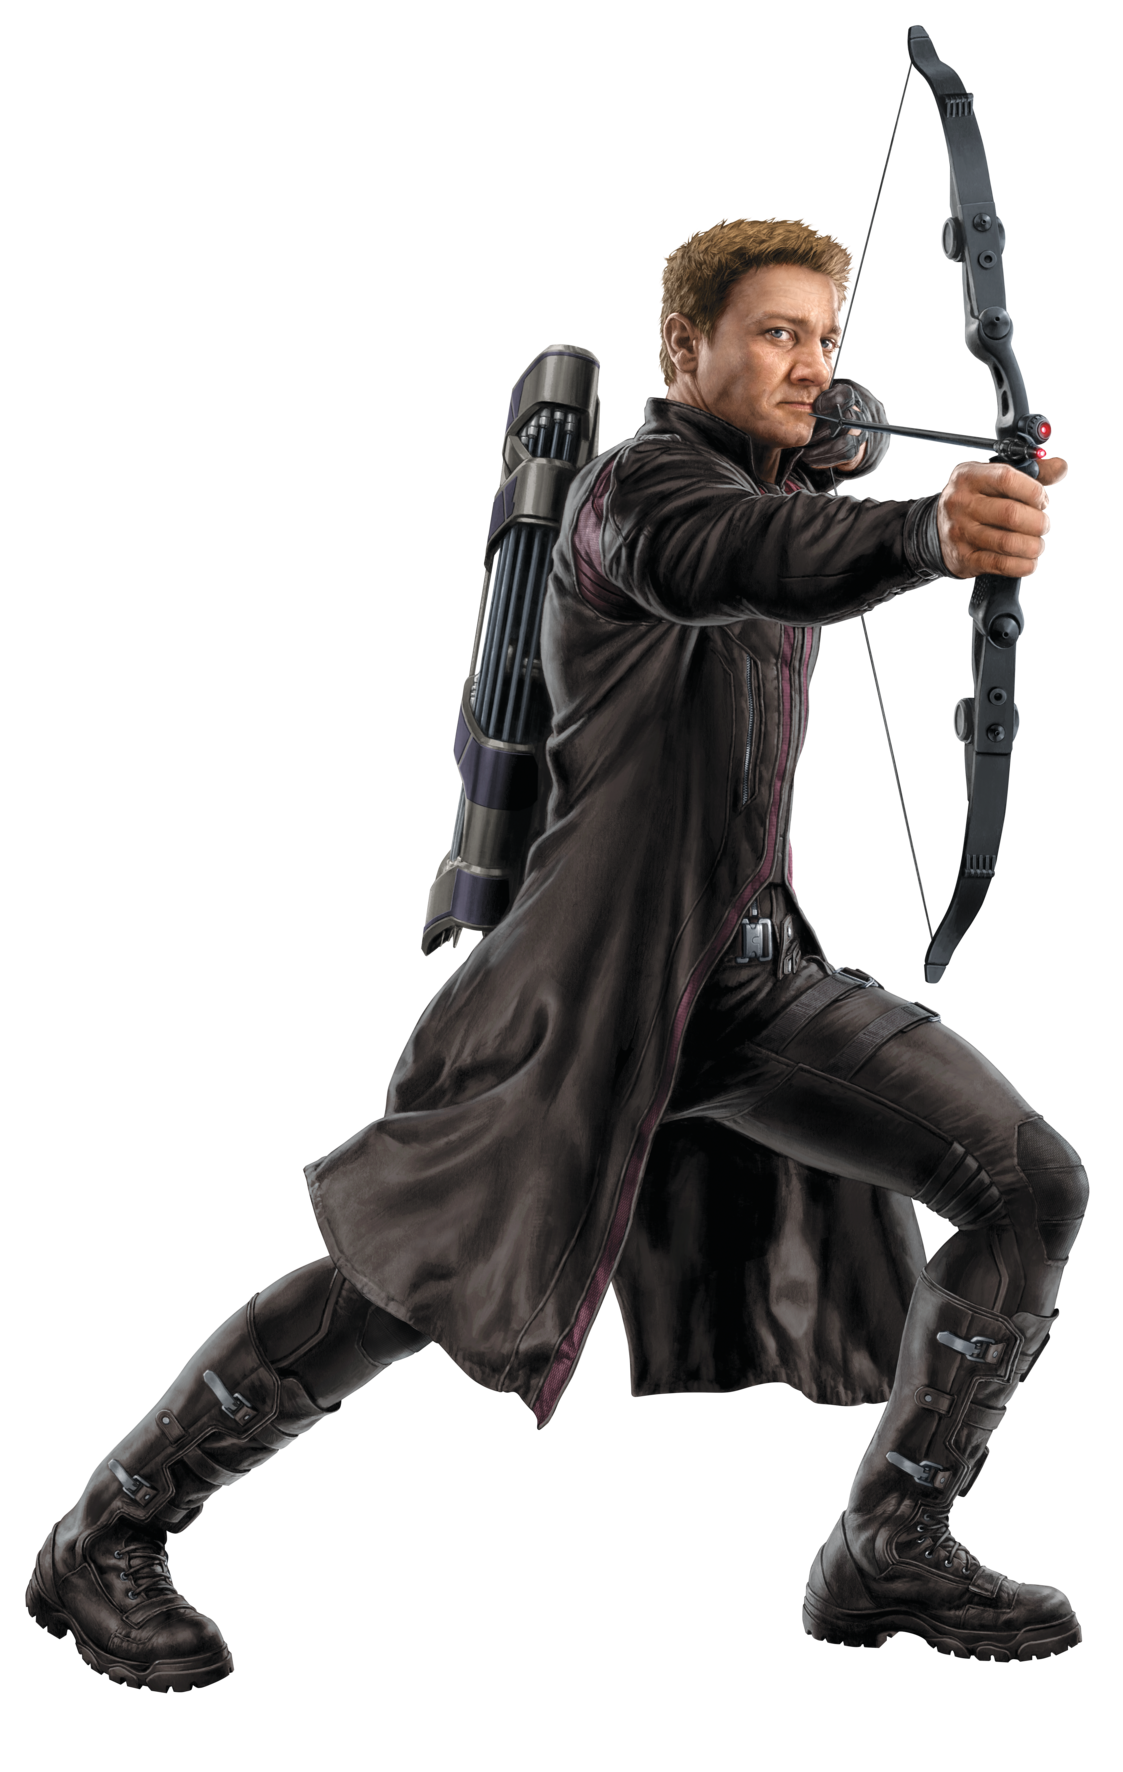 Download Picture Clint Barton Hawkeye Iron Falcon Man Clipart PNG.